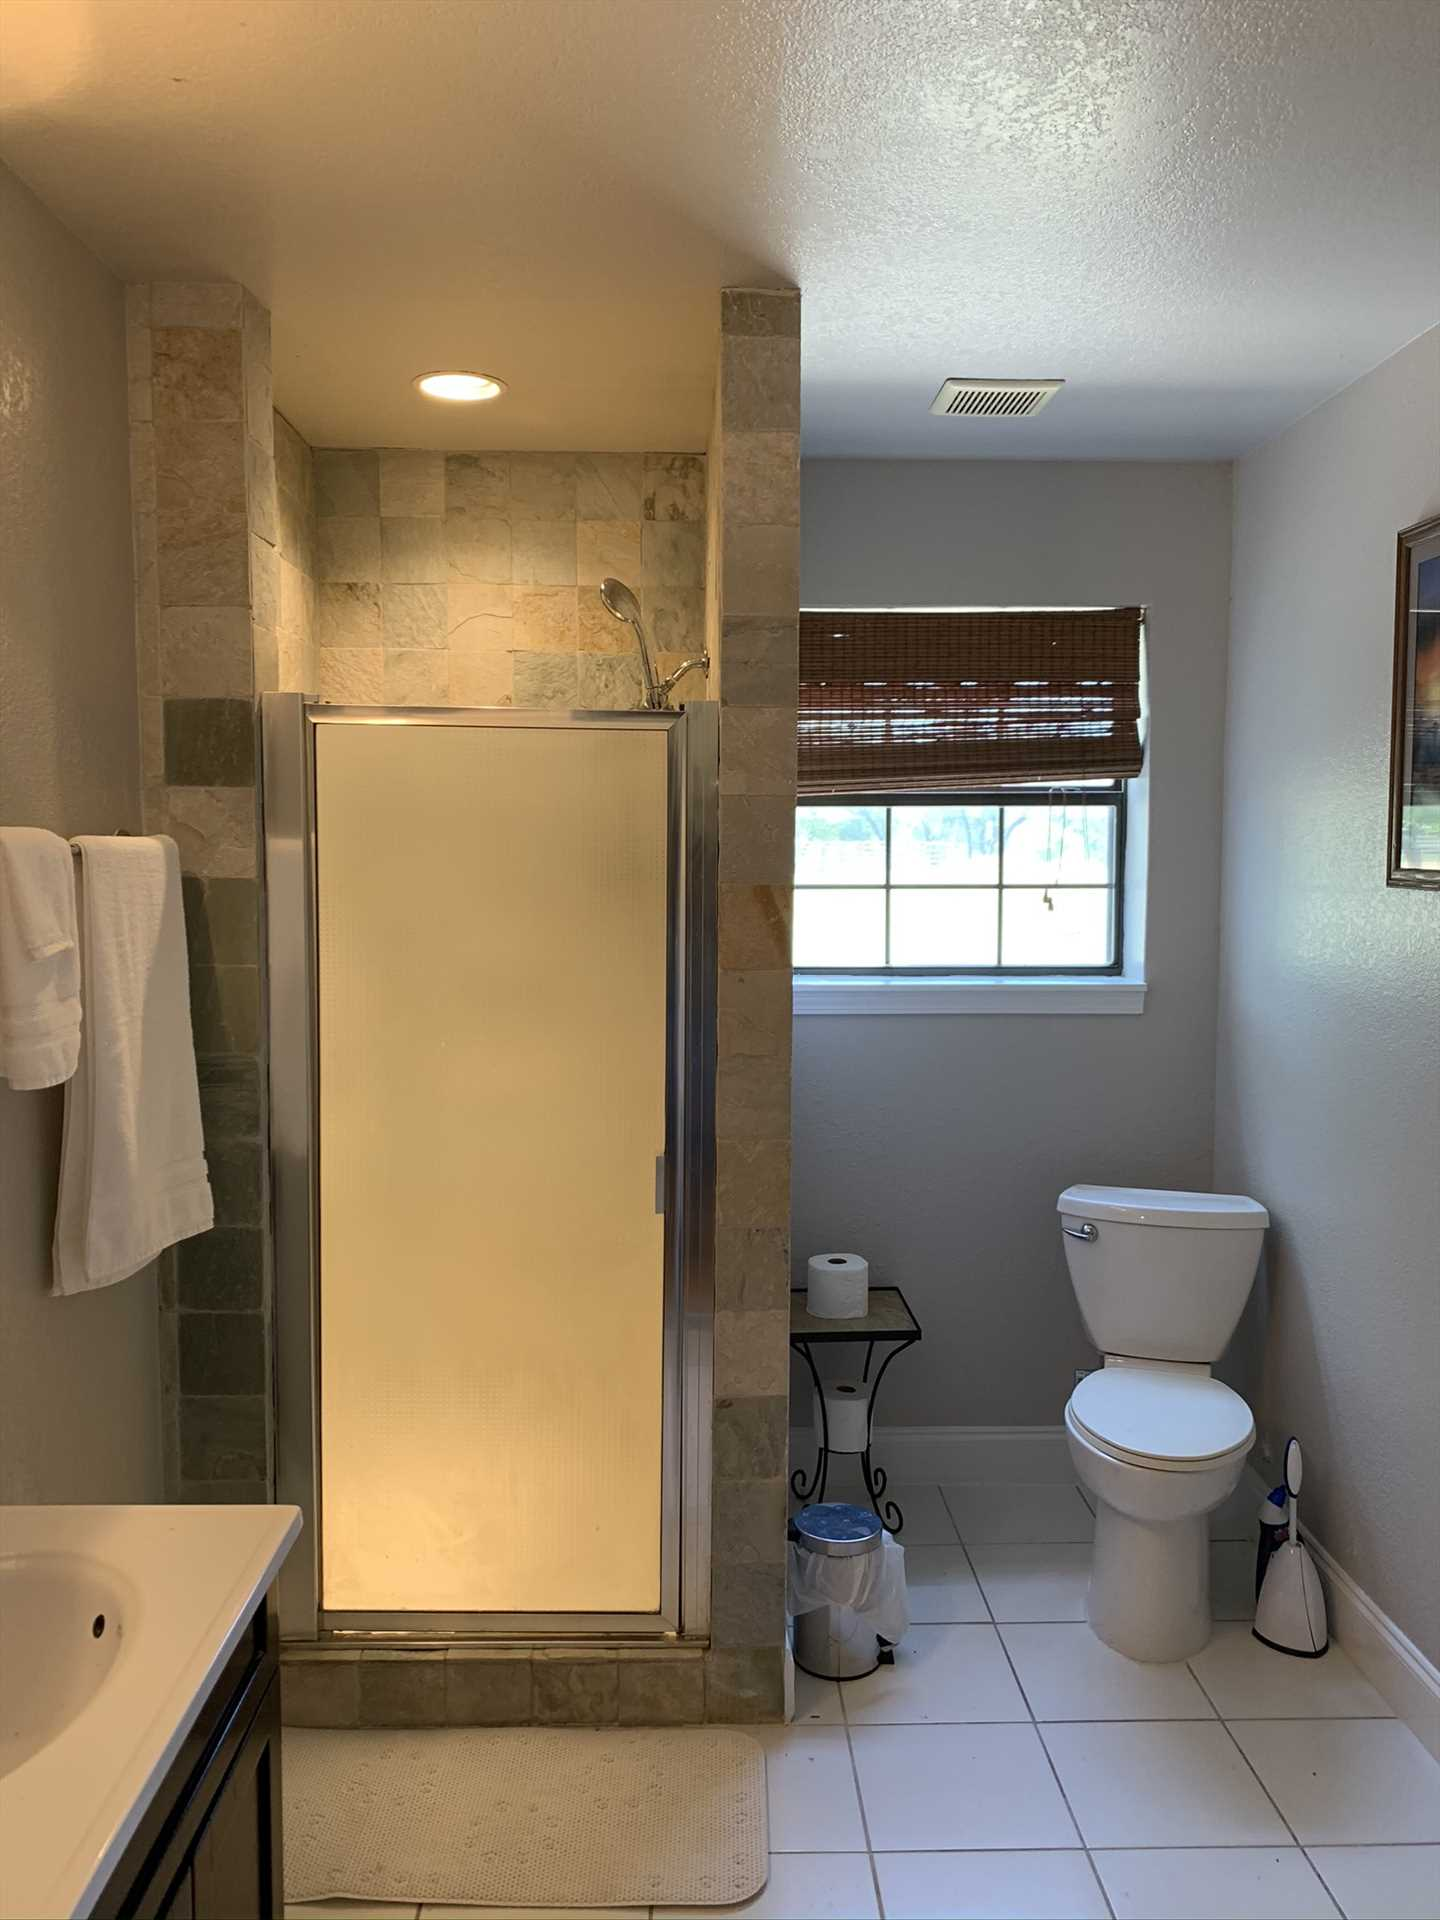 The spotlessly-clean full bath includes a shower, and is decked out with all the linens you'll need.